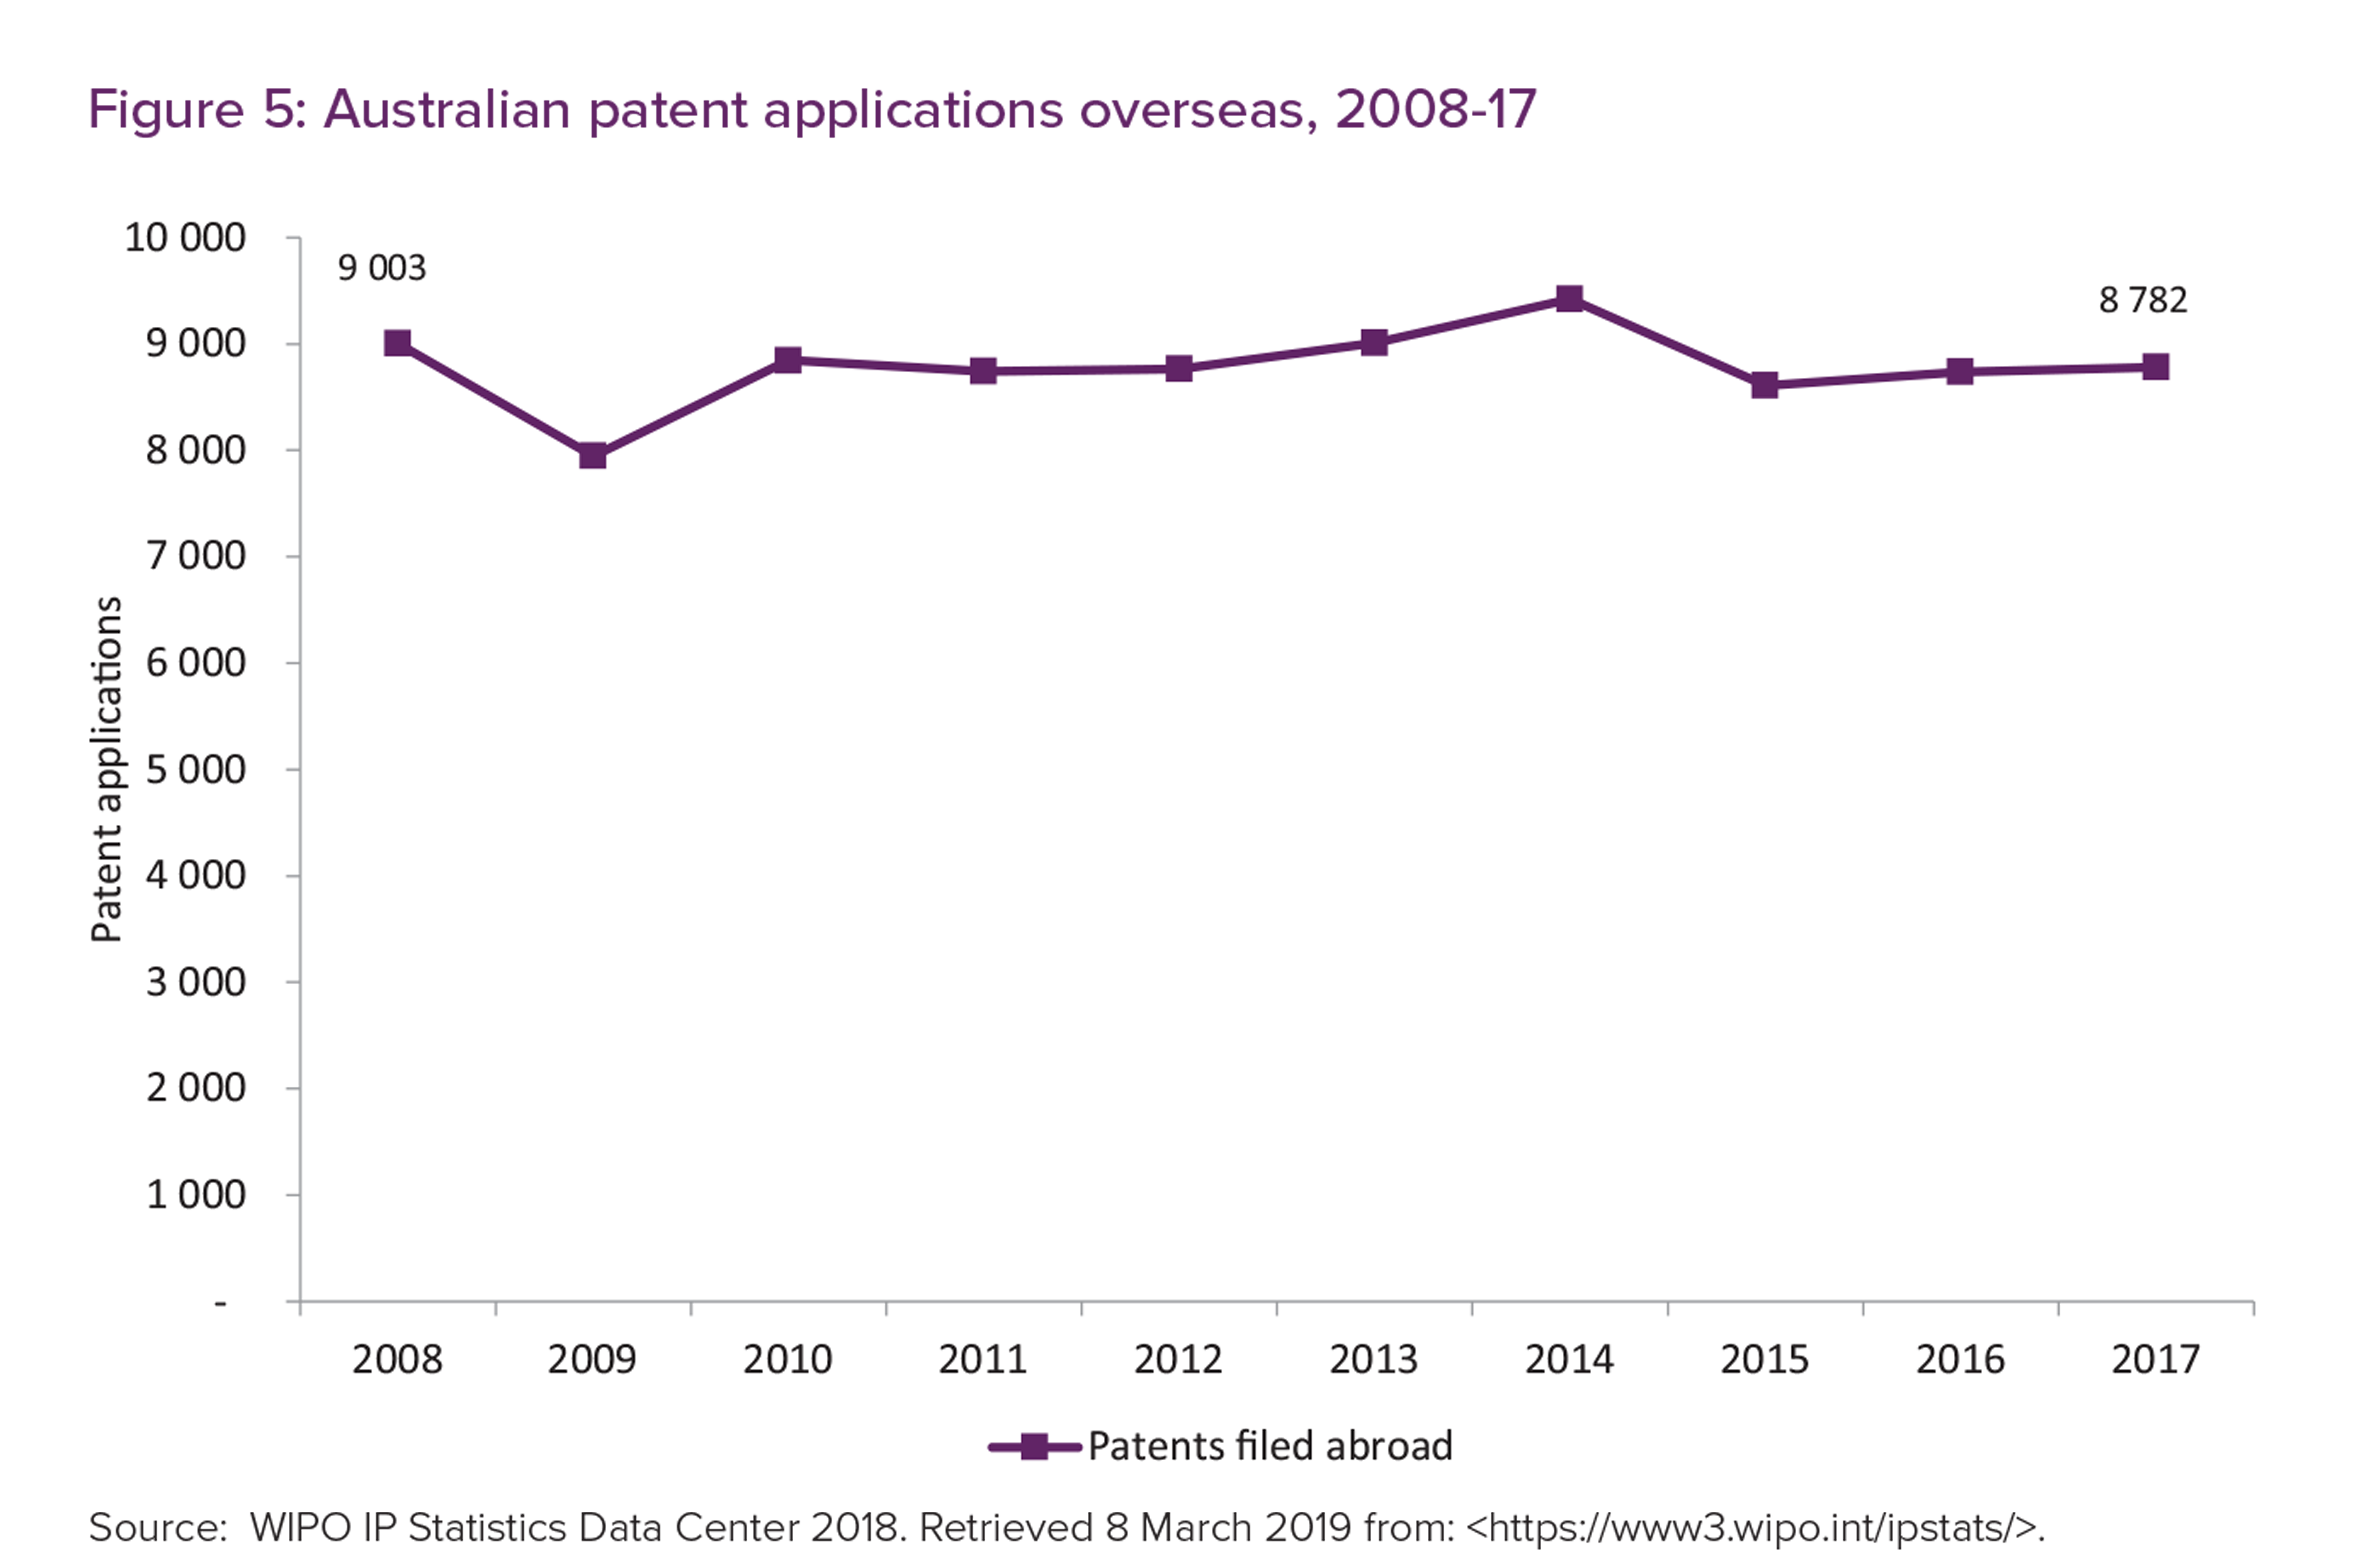 Figure 5 is a graph showing Australian patent applications overseas from 2008 to 2017